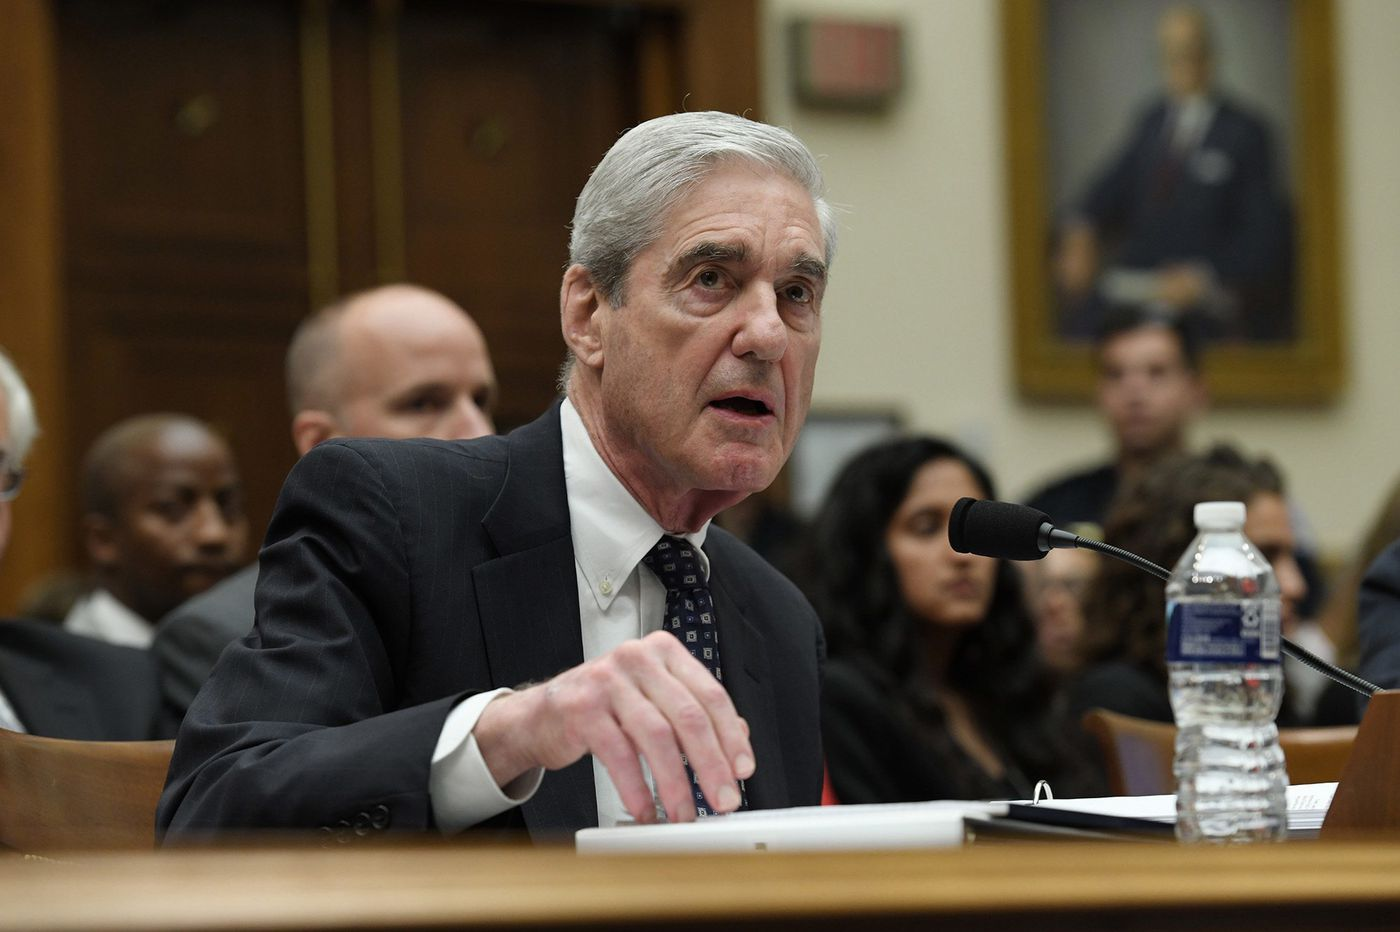 House lawyer says committee investigating whether Trump lied to Robert Mueller